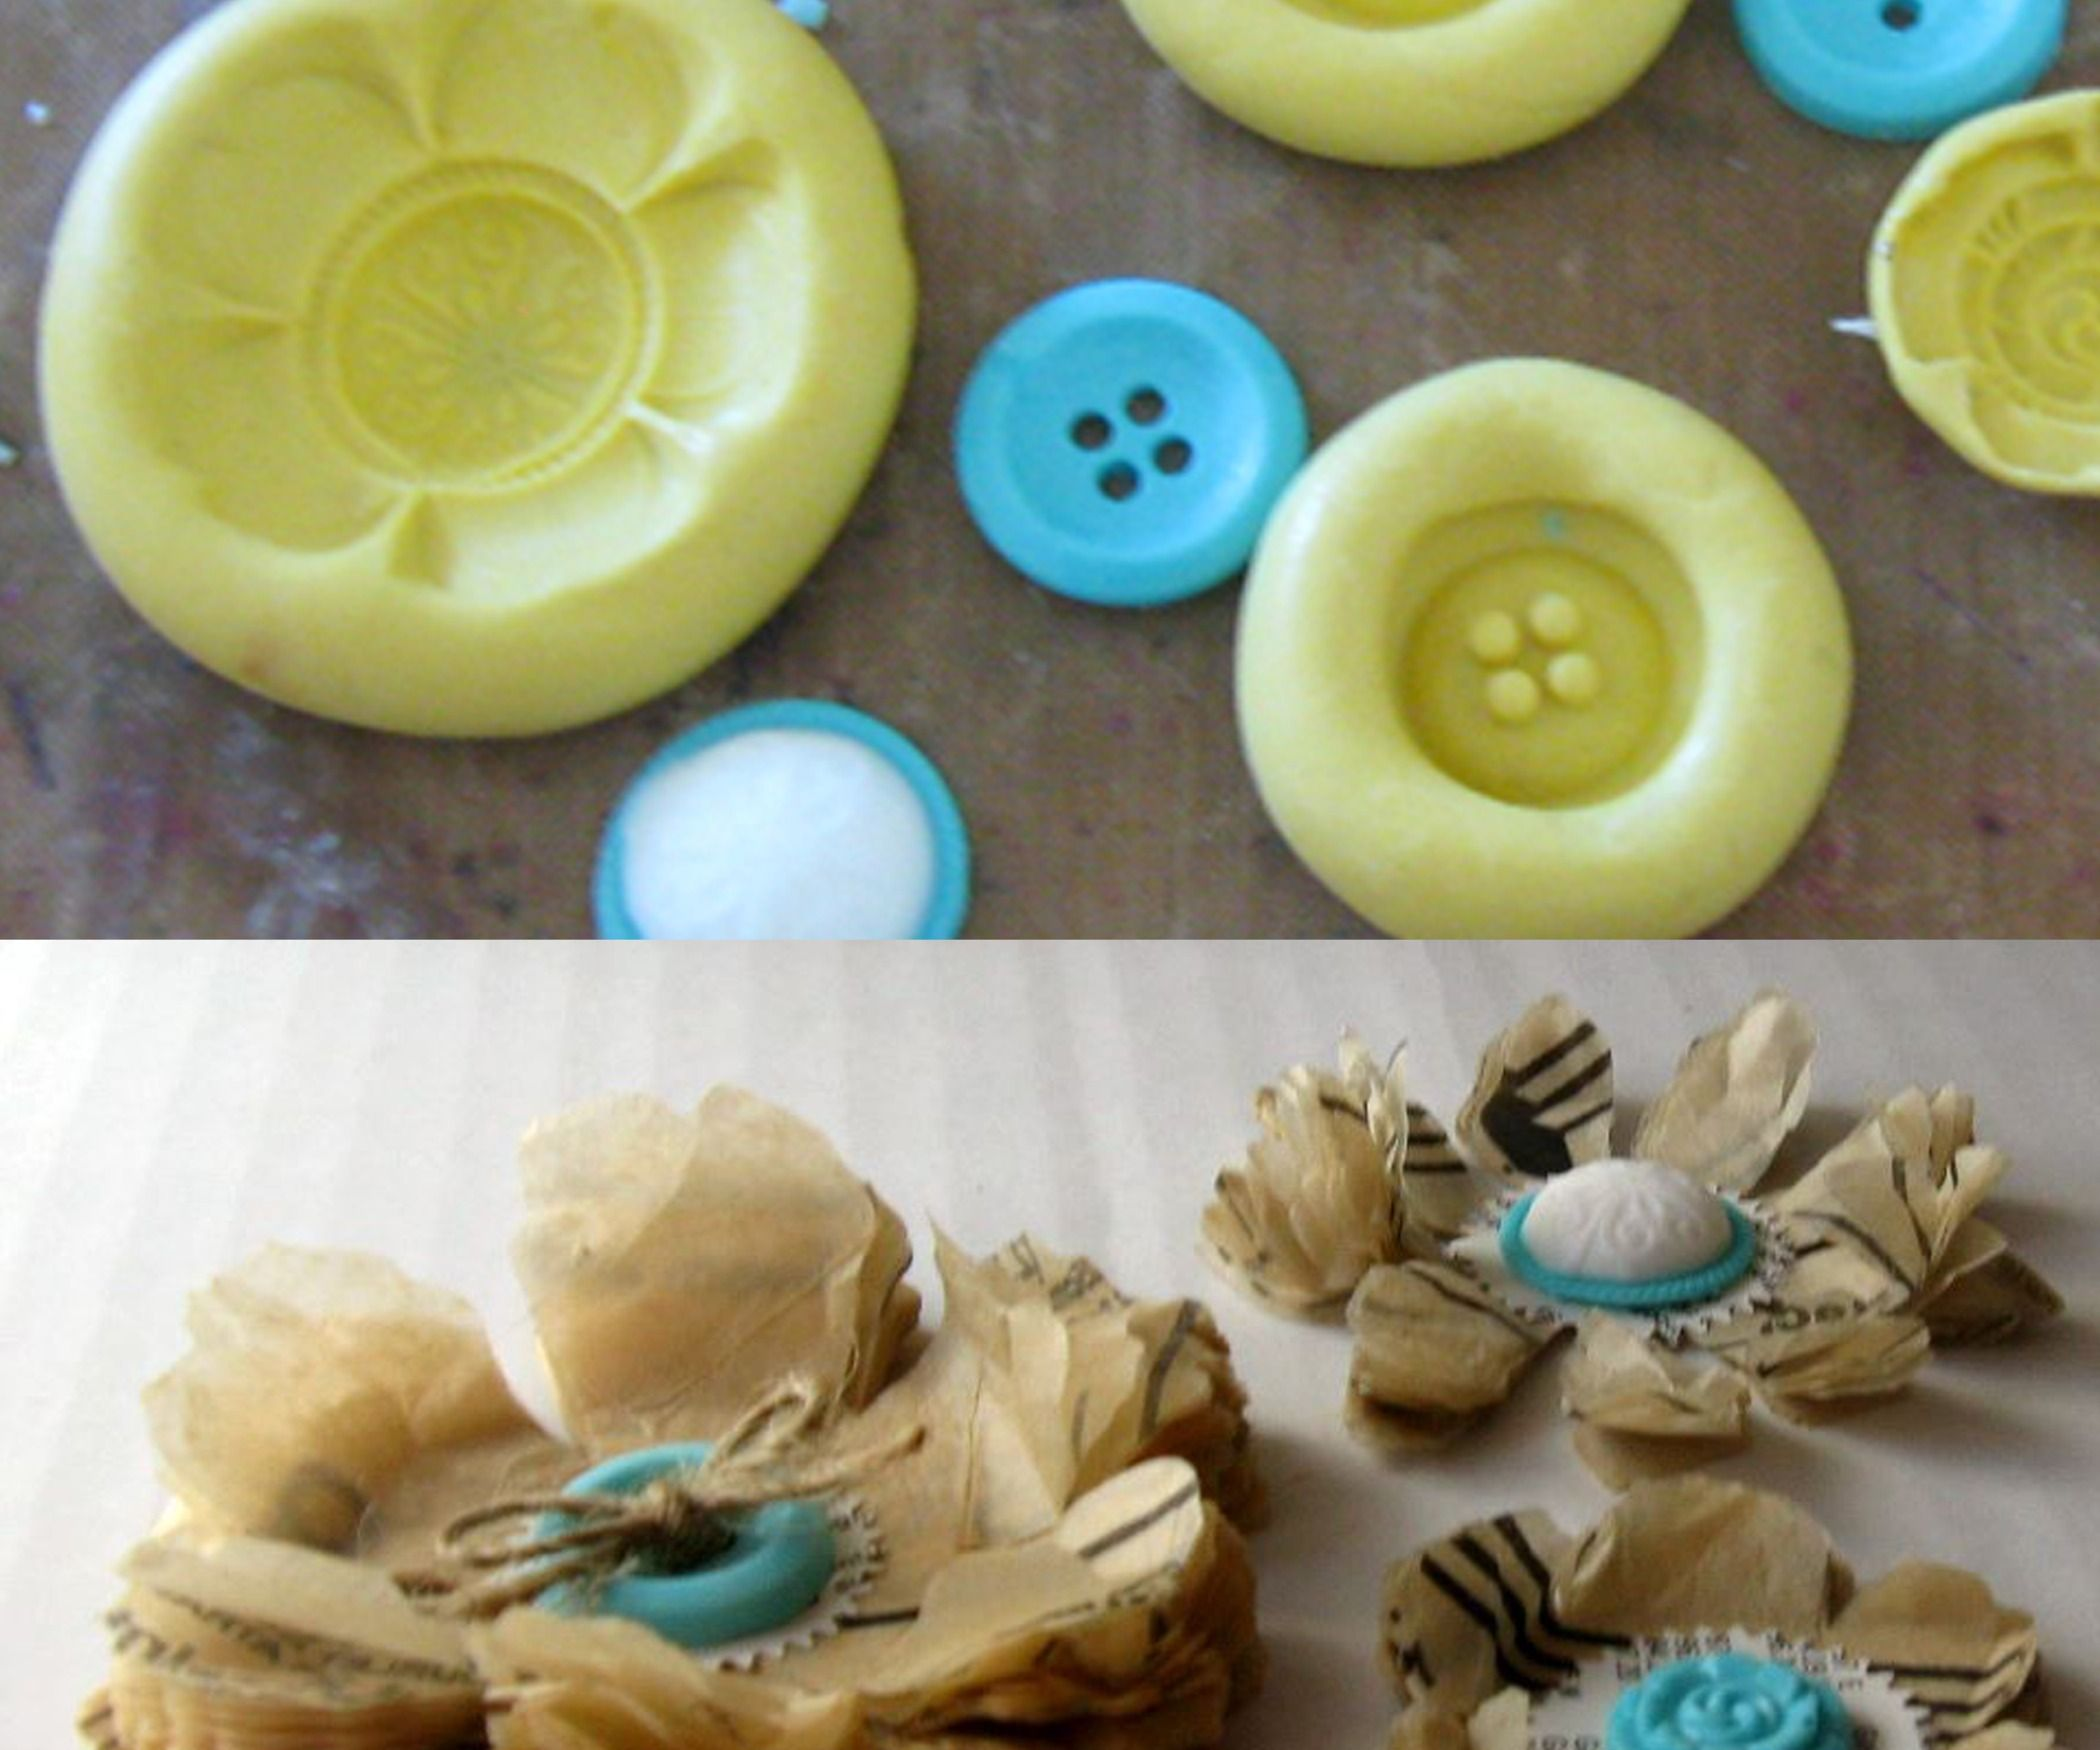 How to Make Molds With Amazing Mold Putty | Craft Projects, DIY